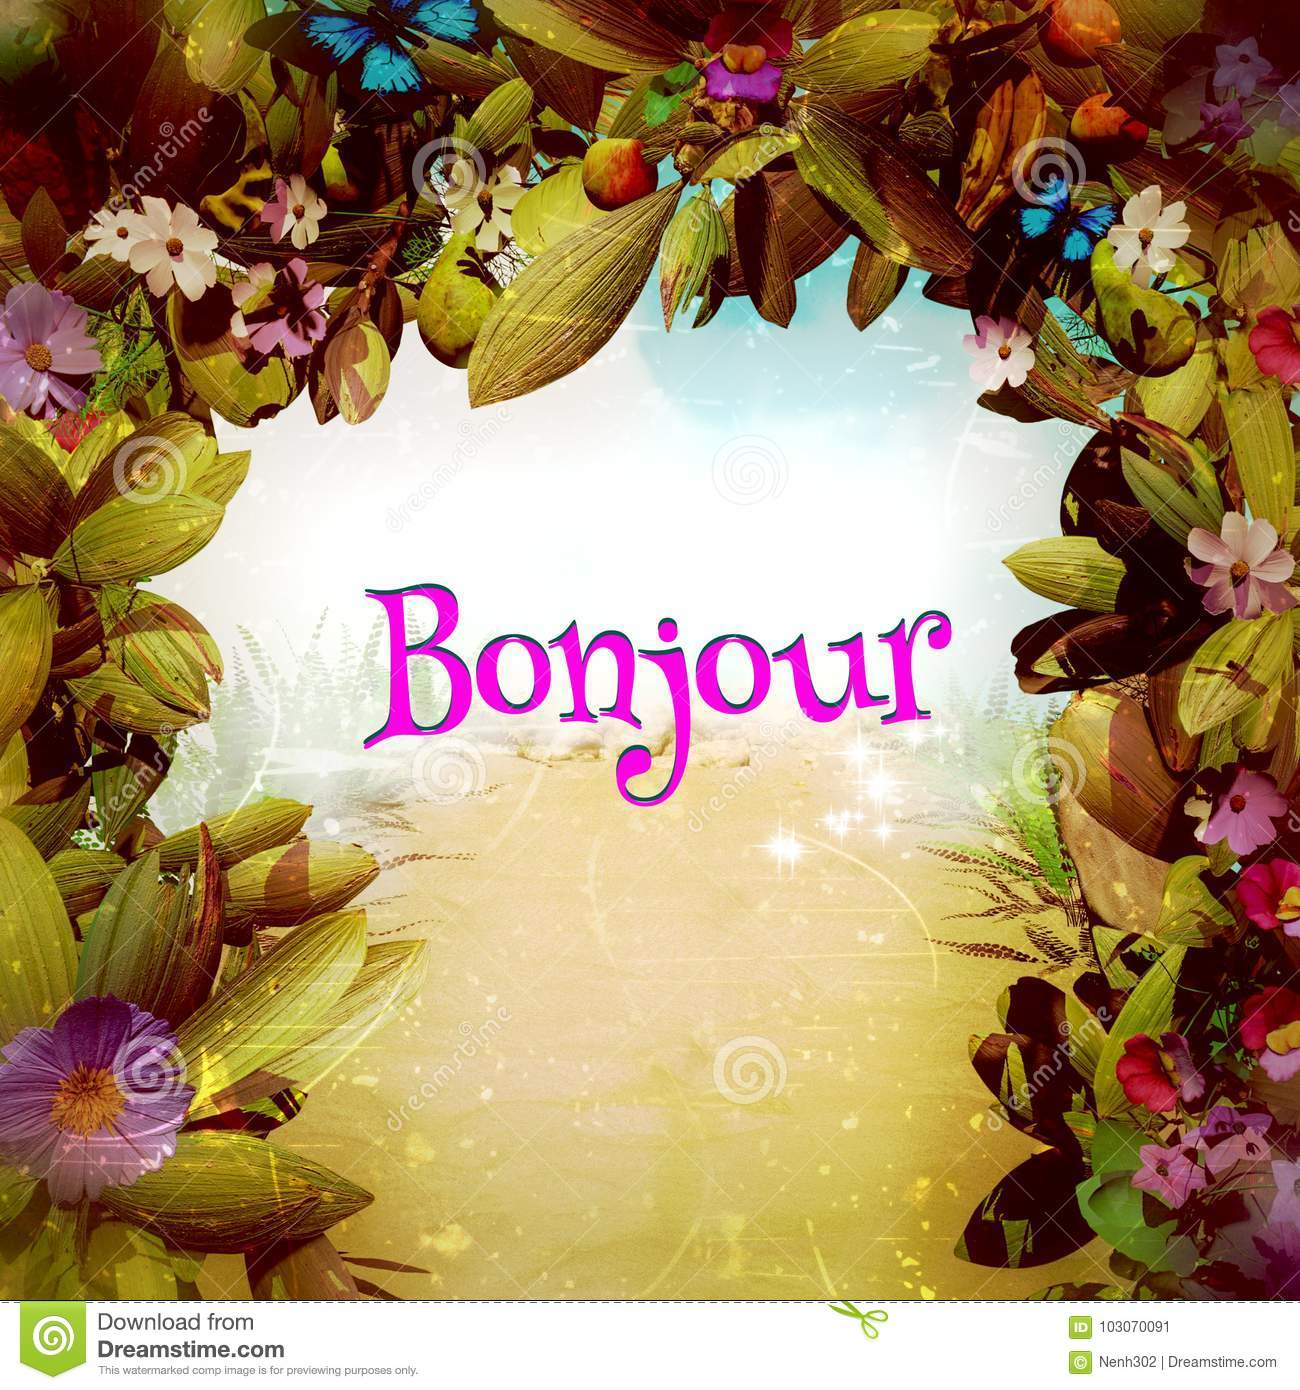 Bonjour In A Magical Fantasy Flower Gate Stock Illustration